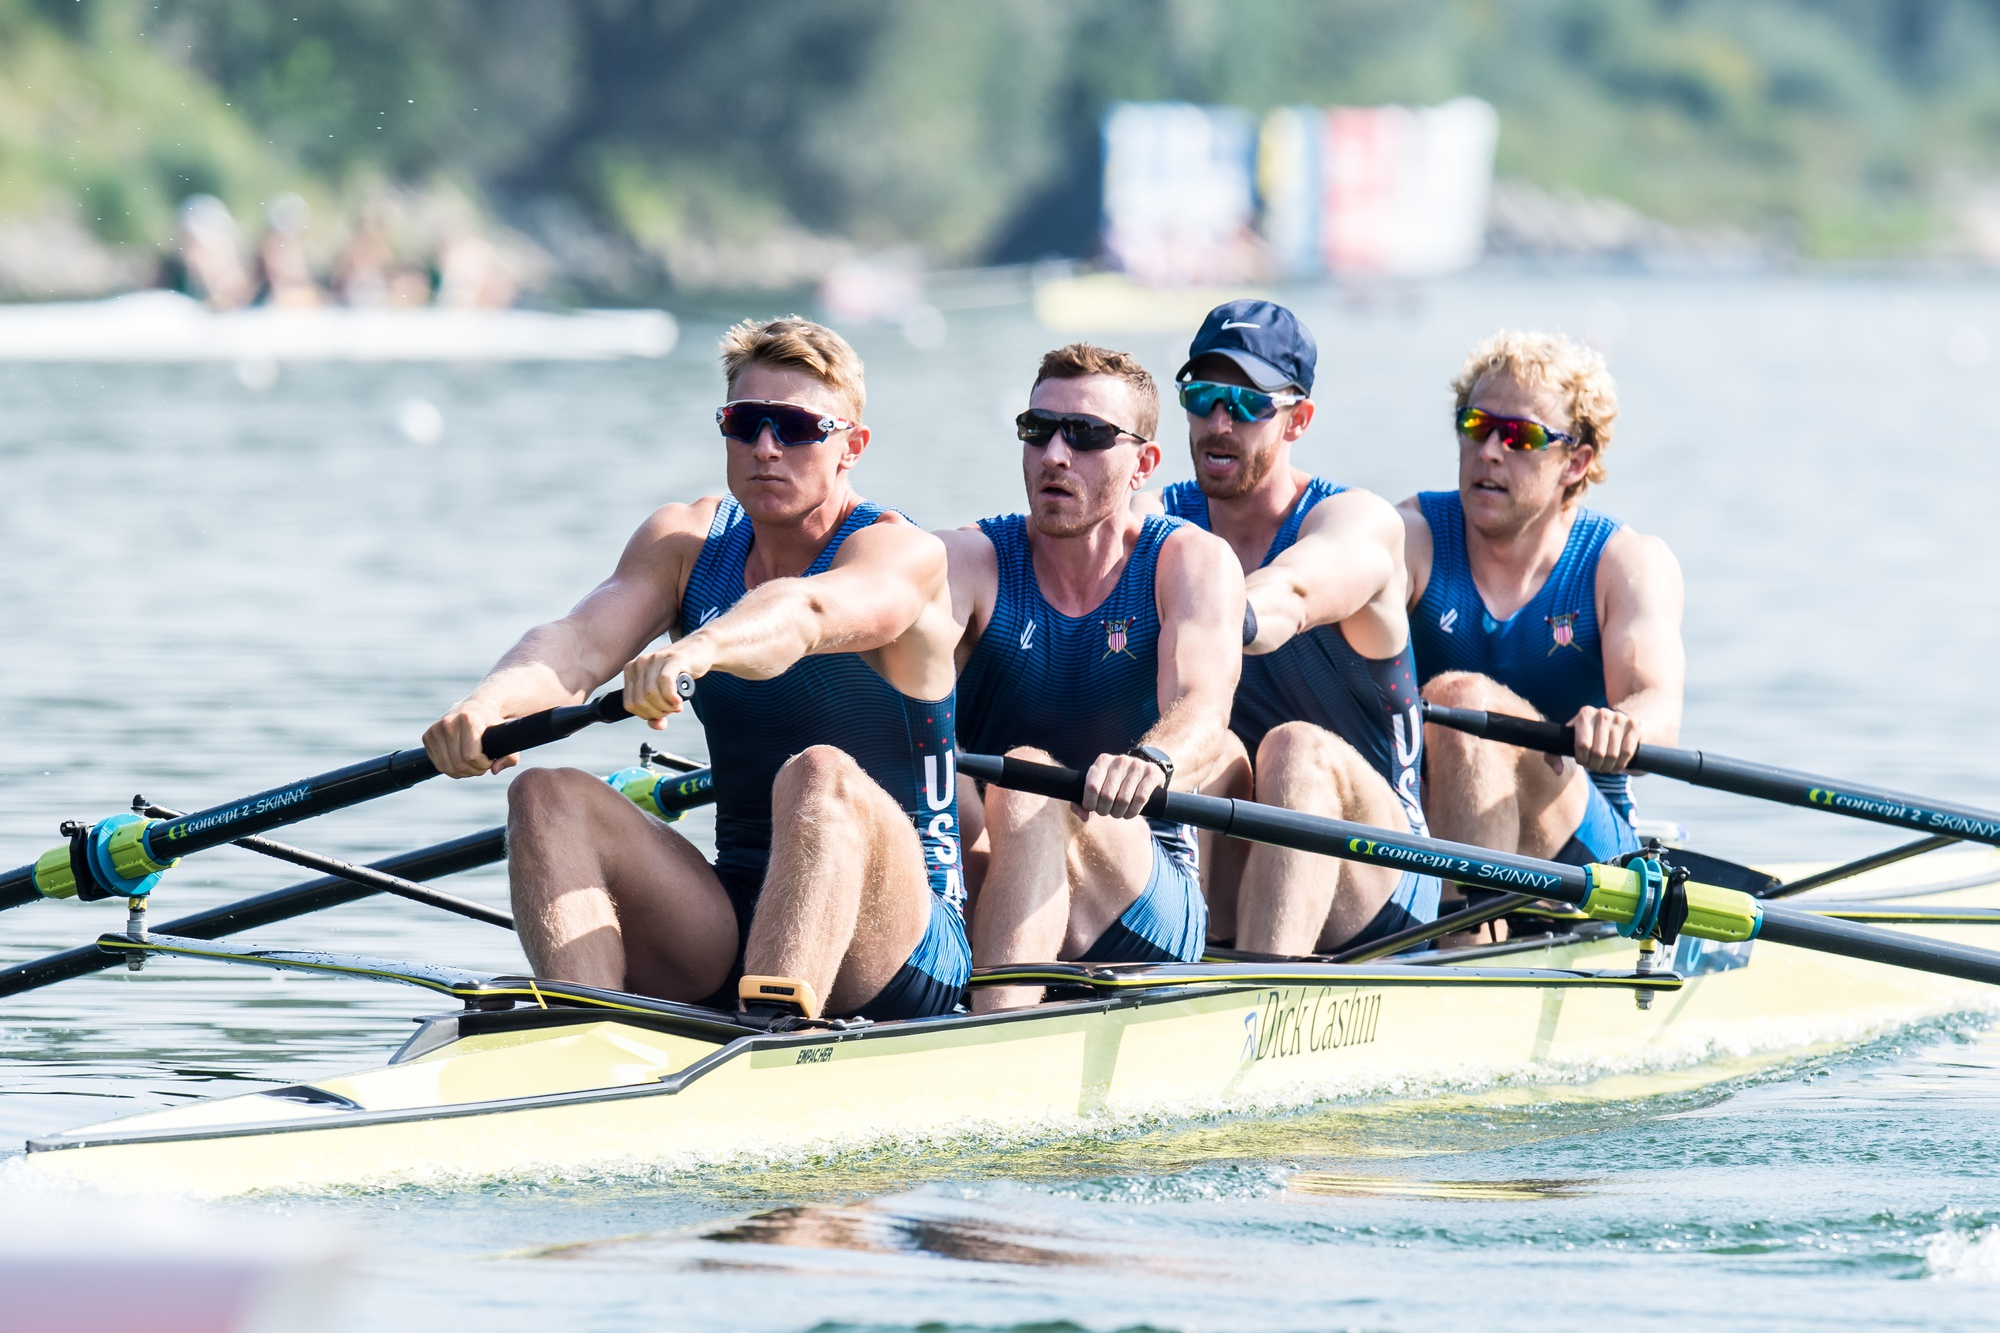 Clark Dean, pictured in the foreground, helped power these four Americans to a top-eight finish at the 2019 World Championships. The Harvard rower had hoped to earn a chance to replicate this international success at the 2020 Olympics, but the COVID-19 pandemic has put his training schedule in an uncertain place.